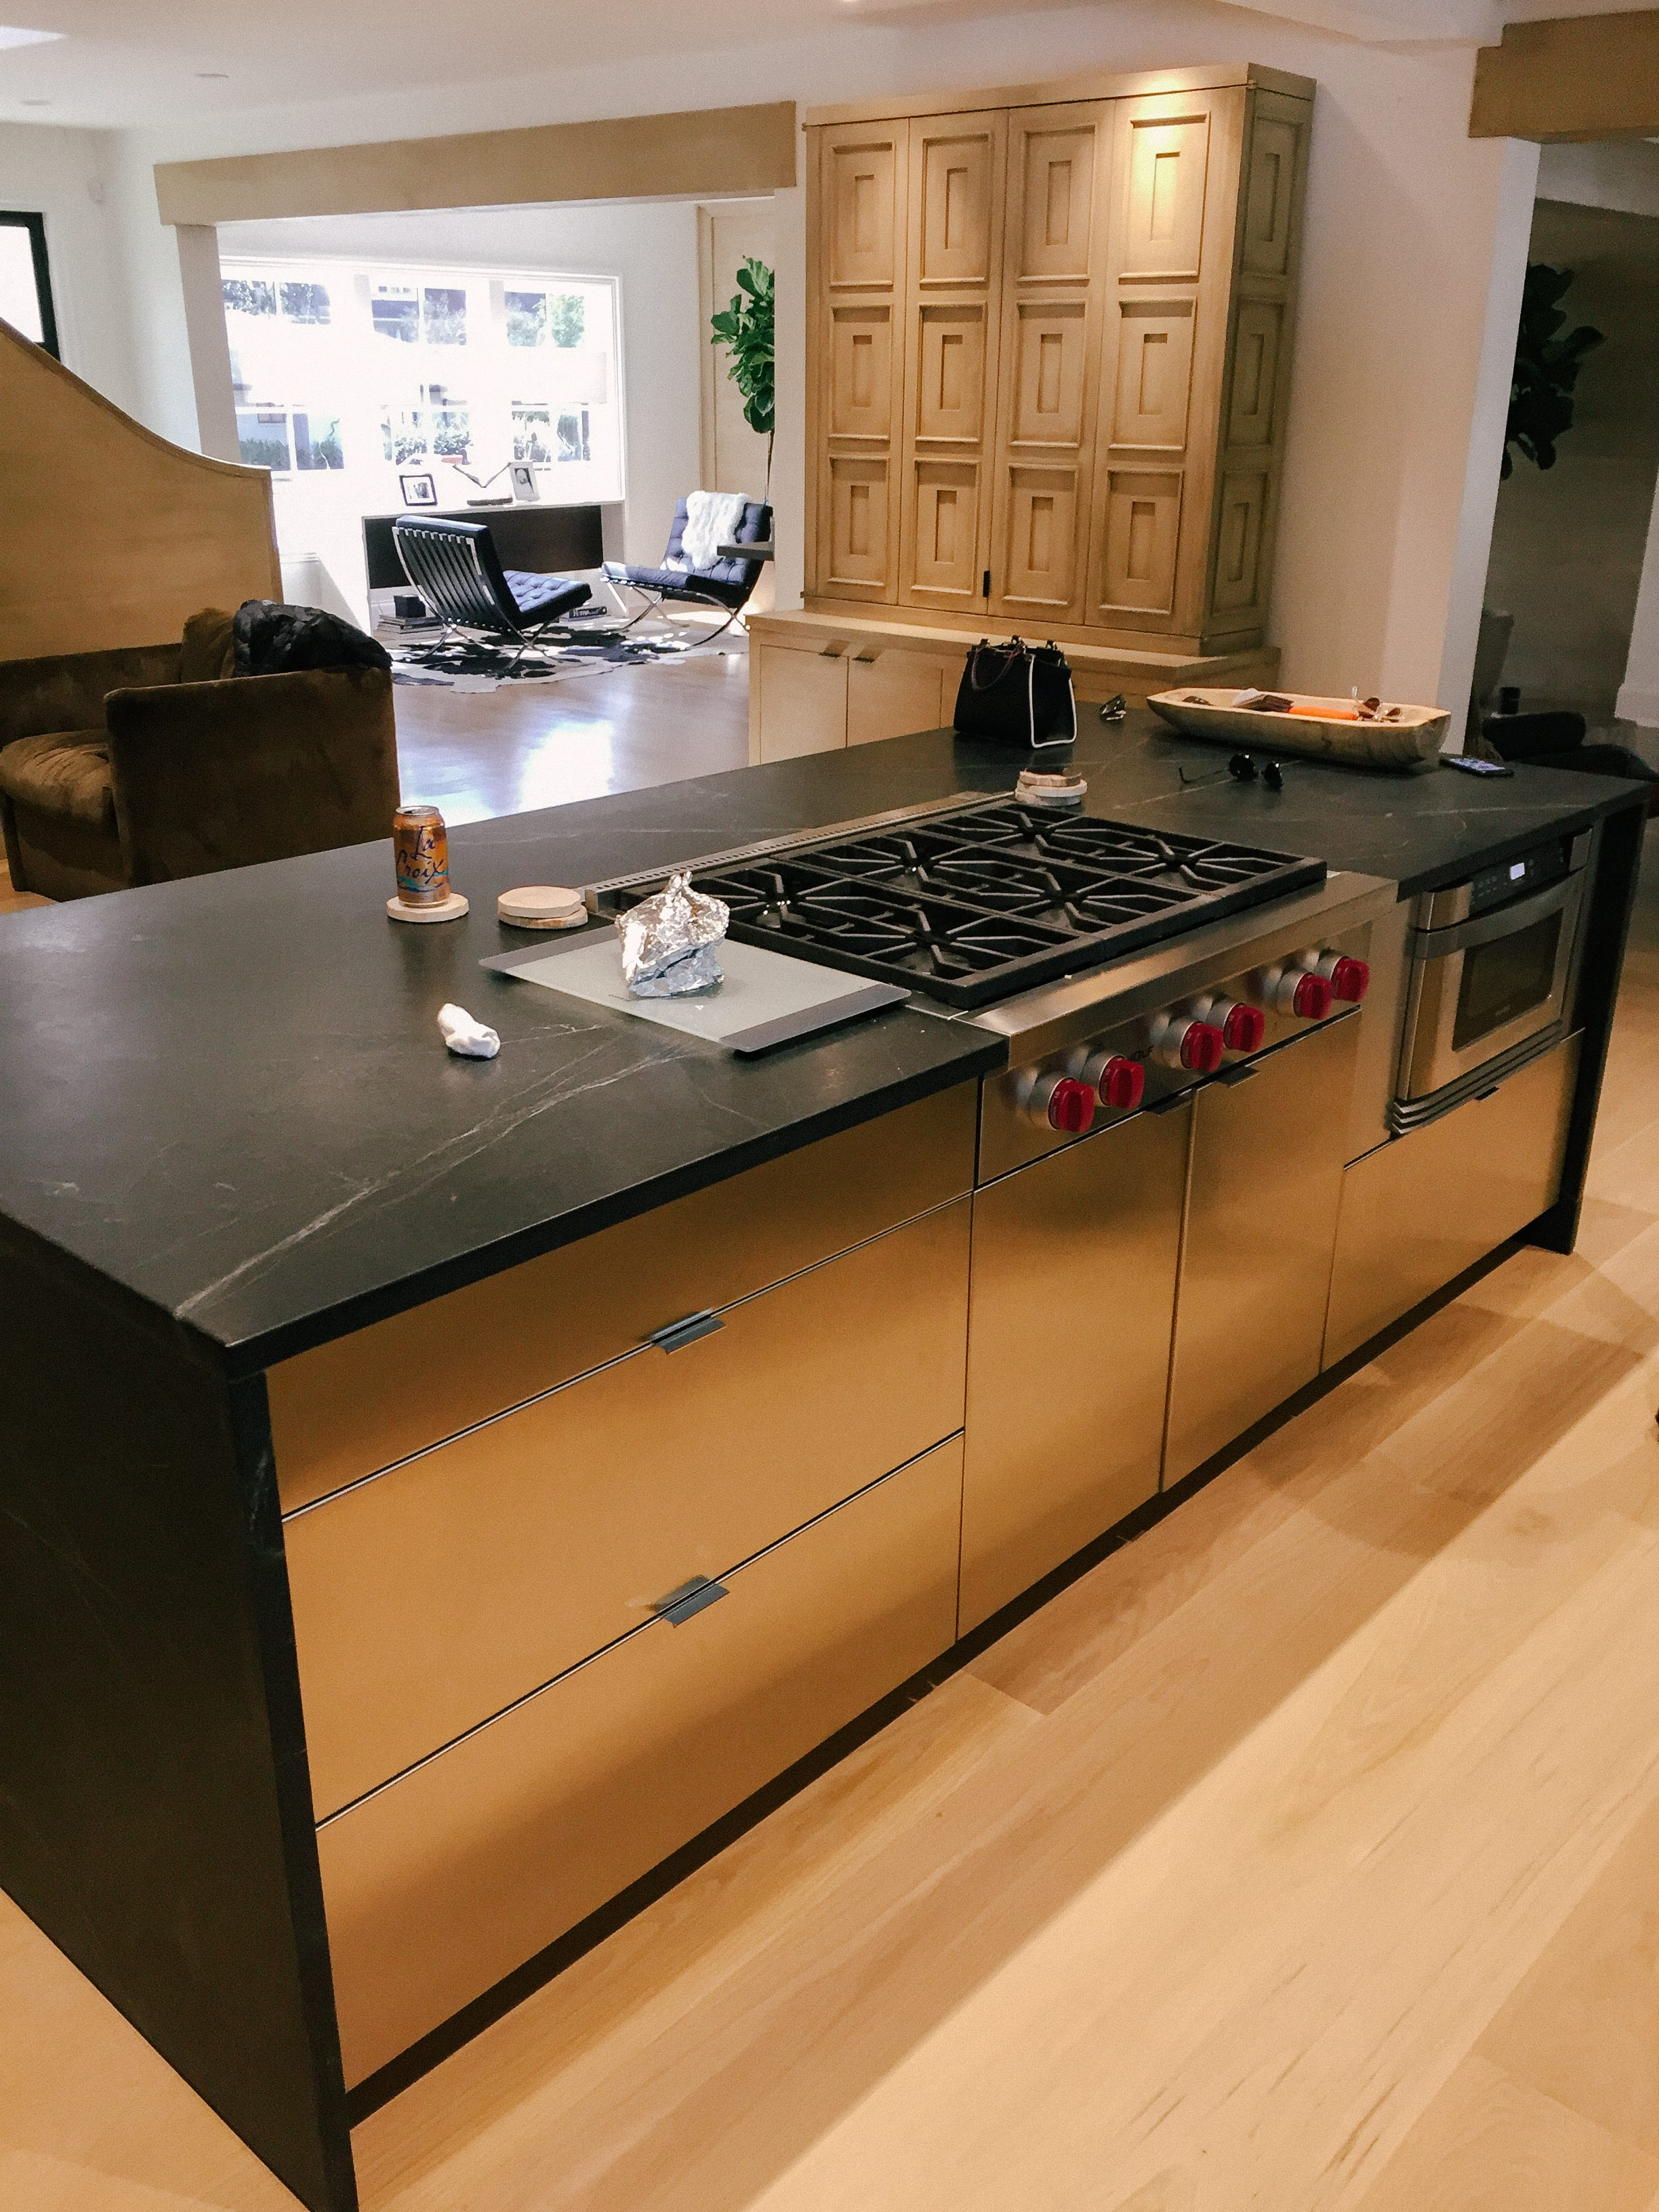 Stainless Steel Kitchen with Black Marble Countertops